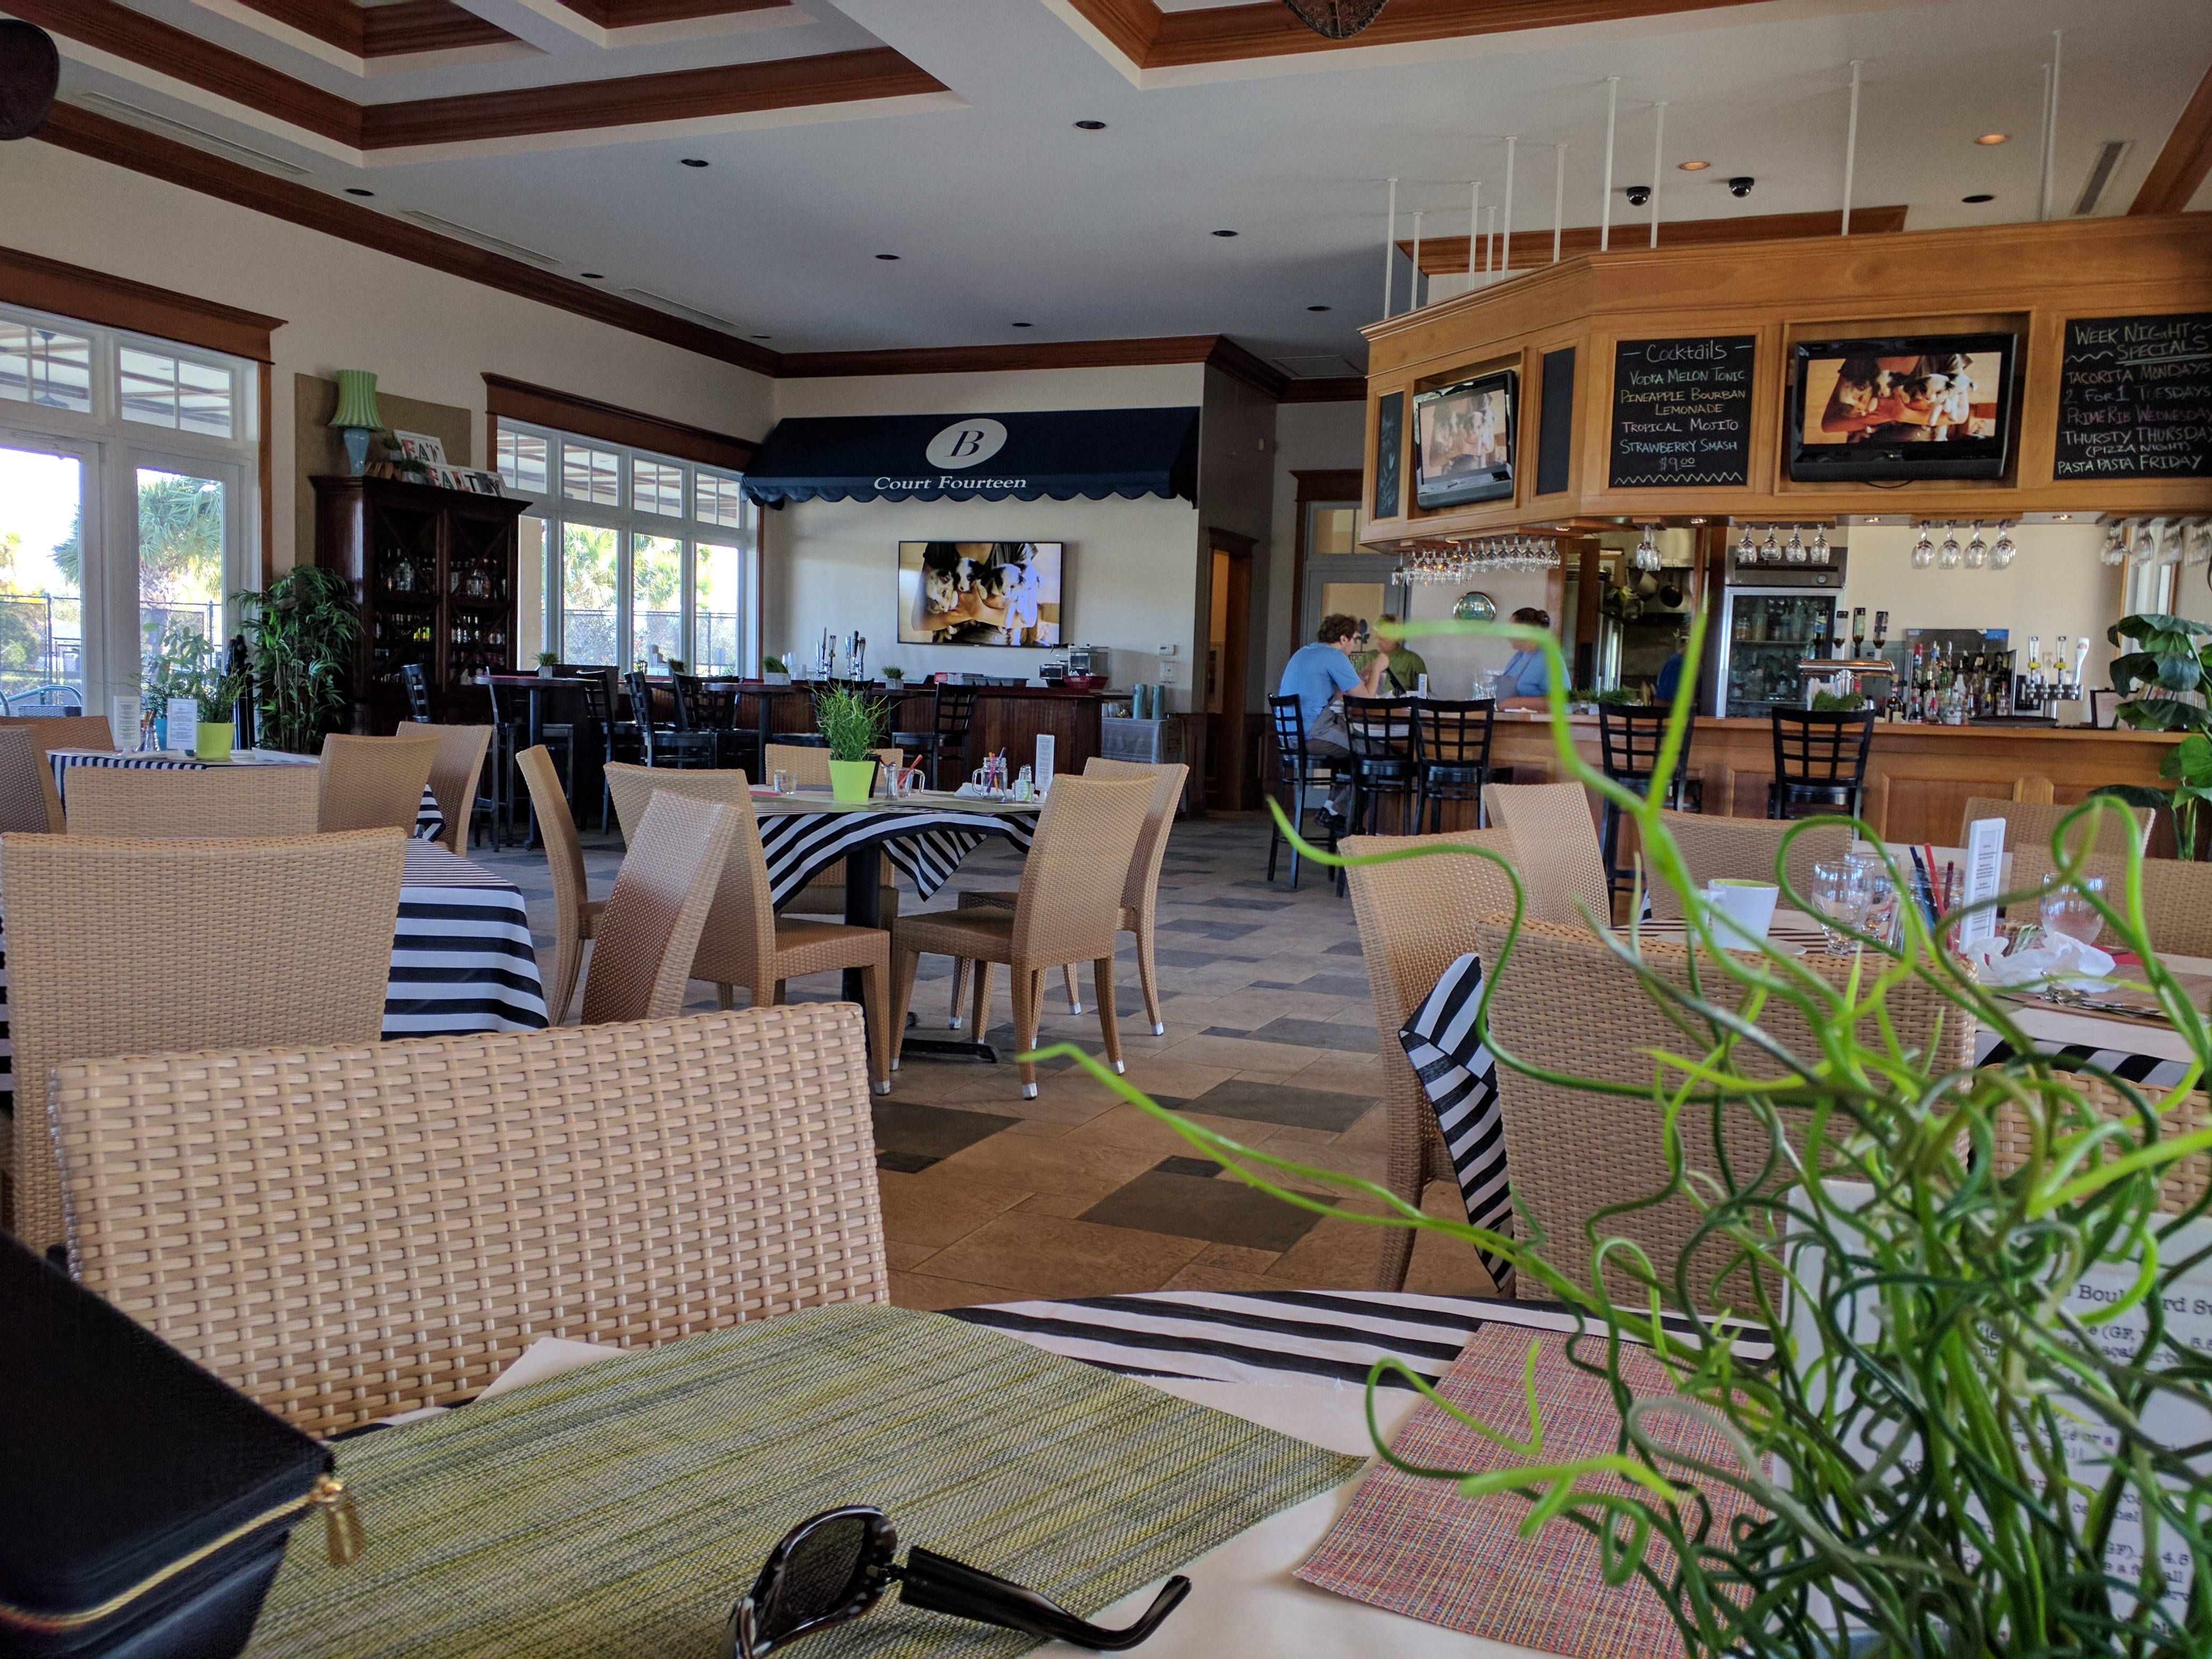 Counter Culture now resides in a bright, modern space in The Boulevard Tennis Club in Vero Beach.